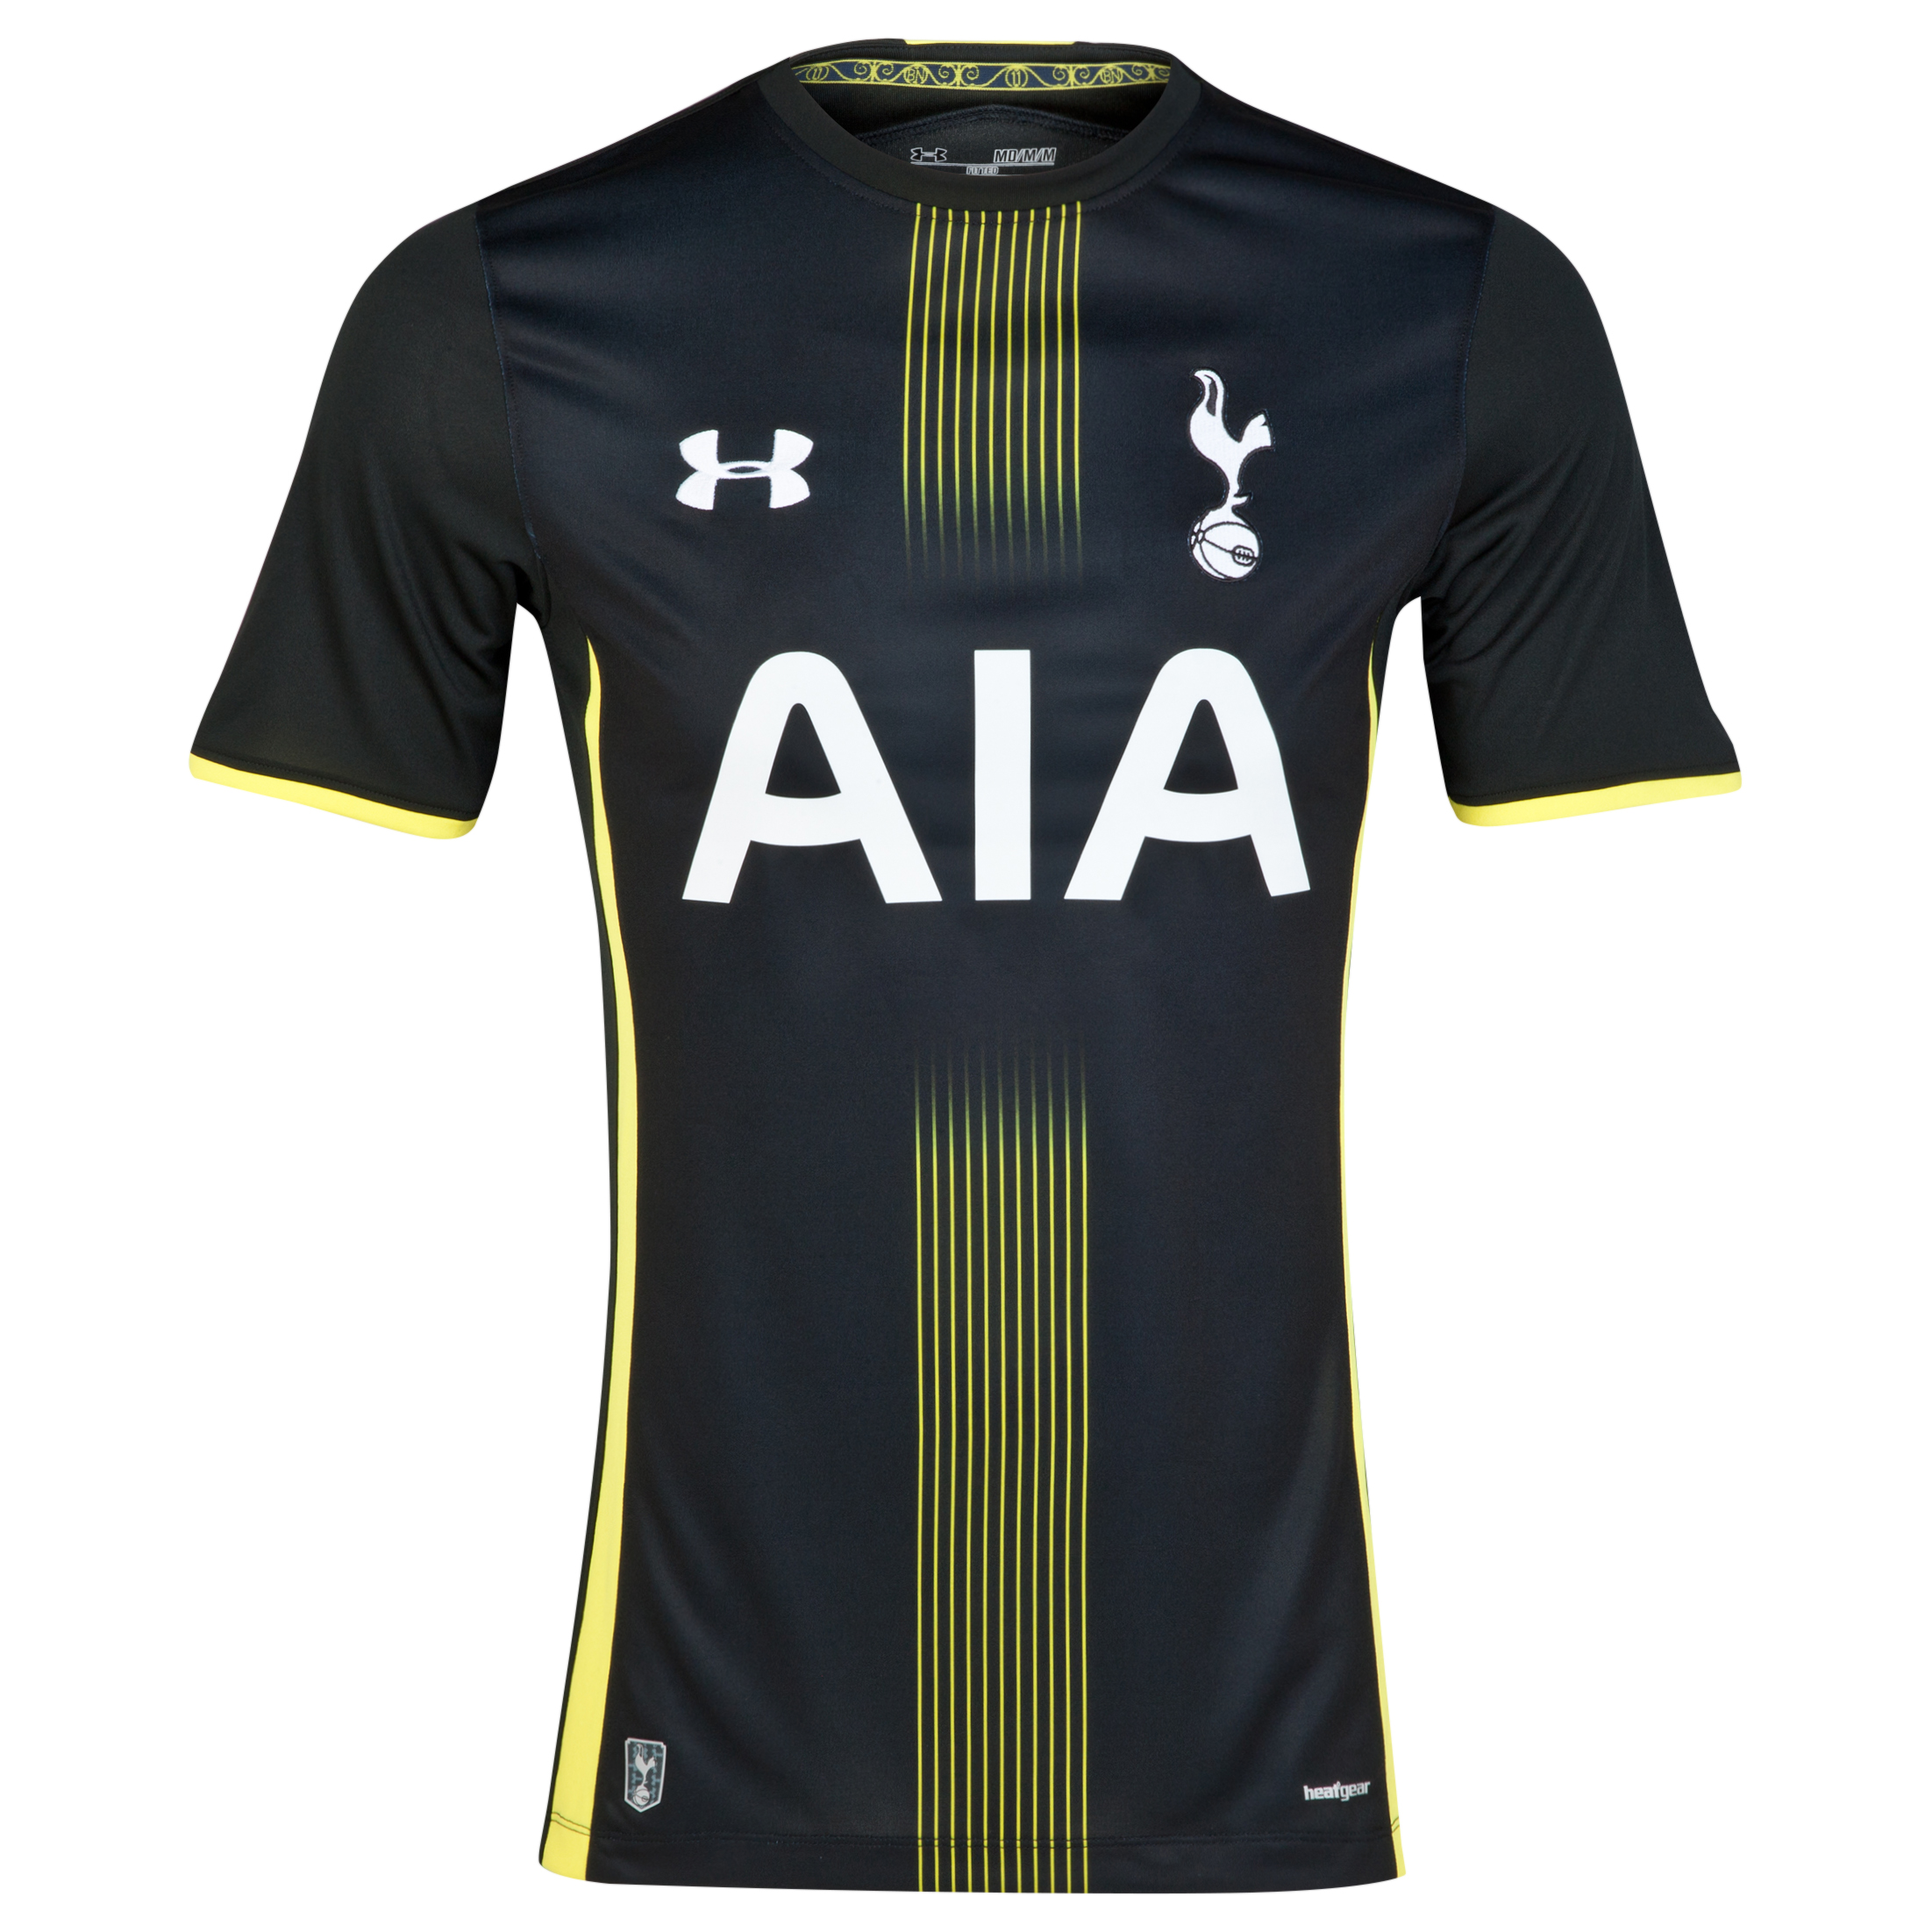 Tottenham Hotspur Away Shirt 2014/15